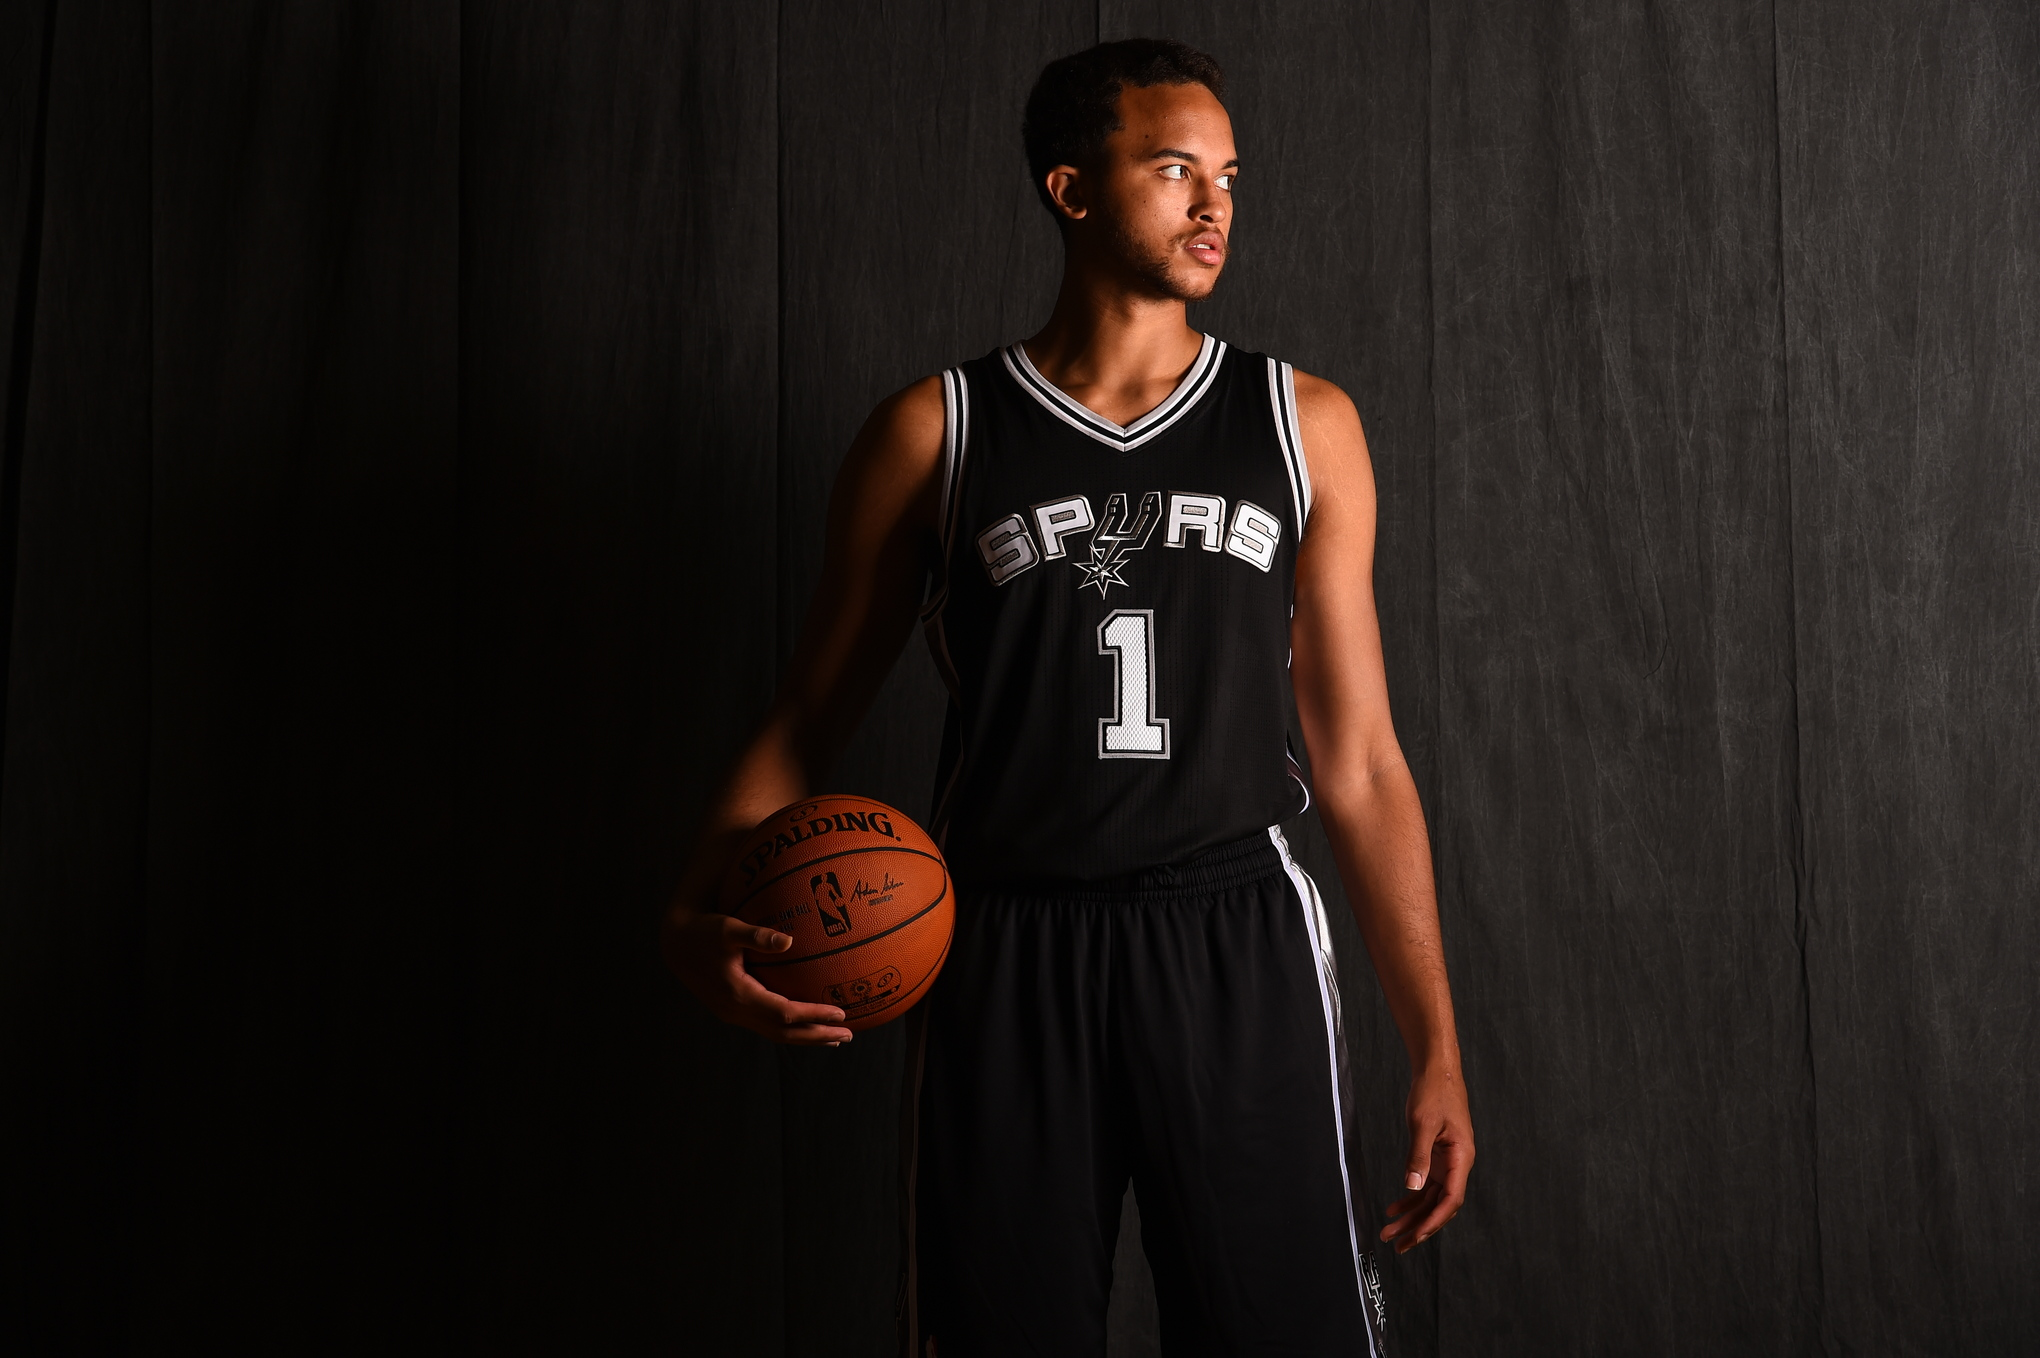 Kyle-anderson-nba-rookie-day-7